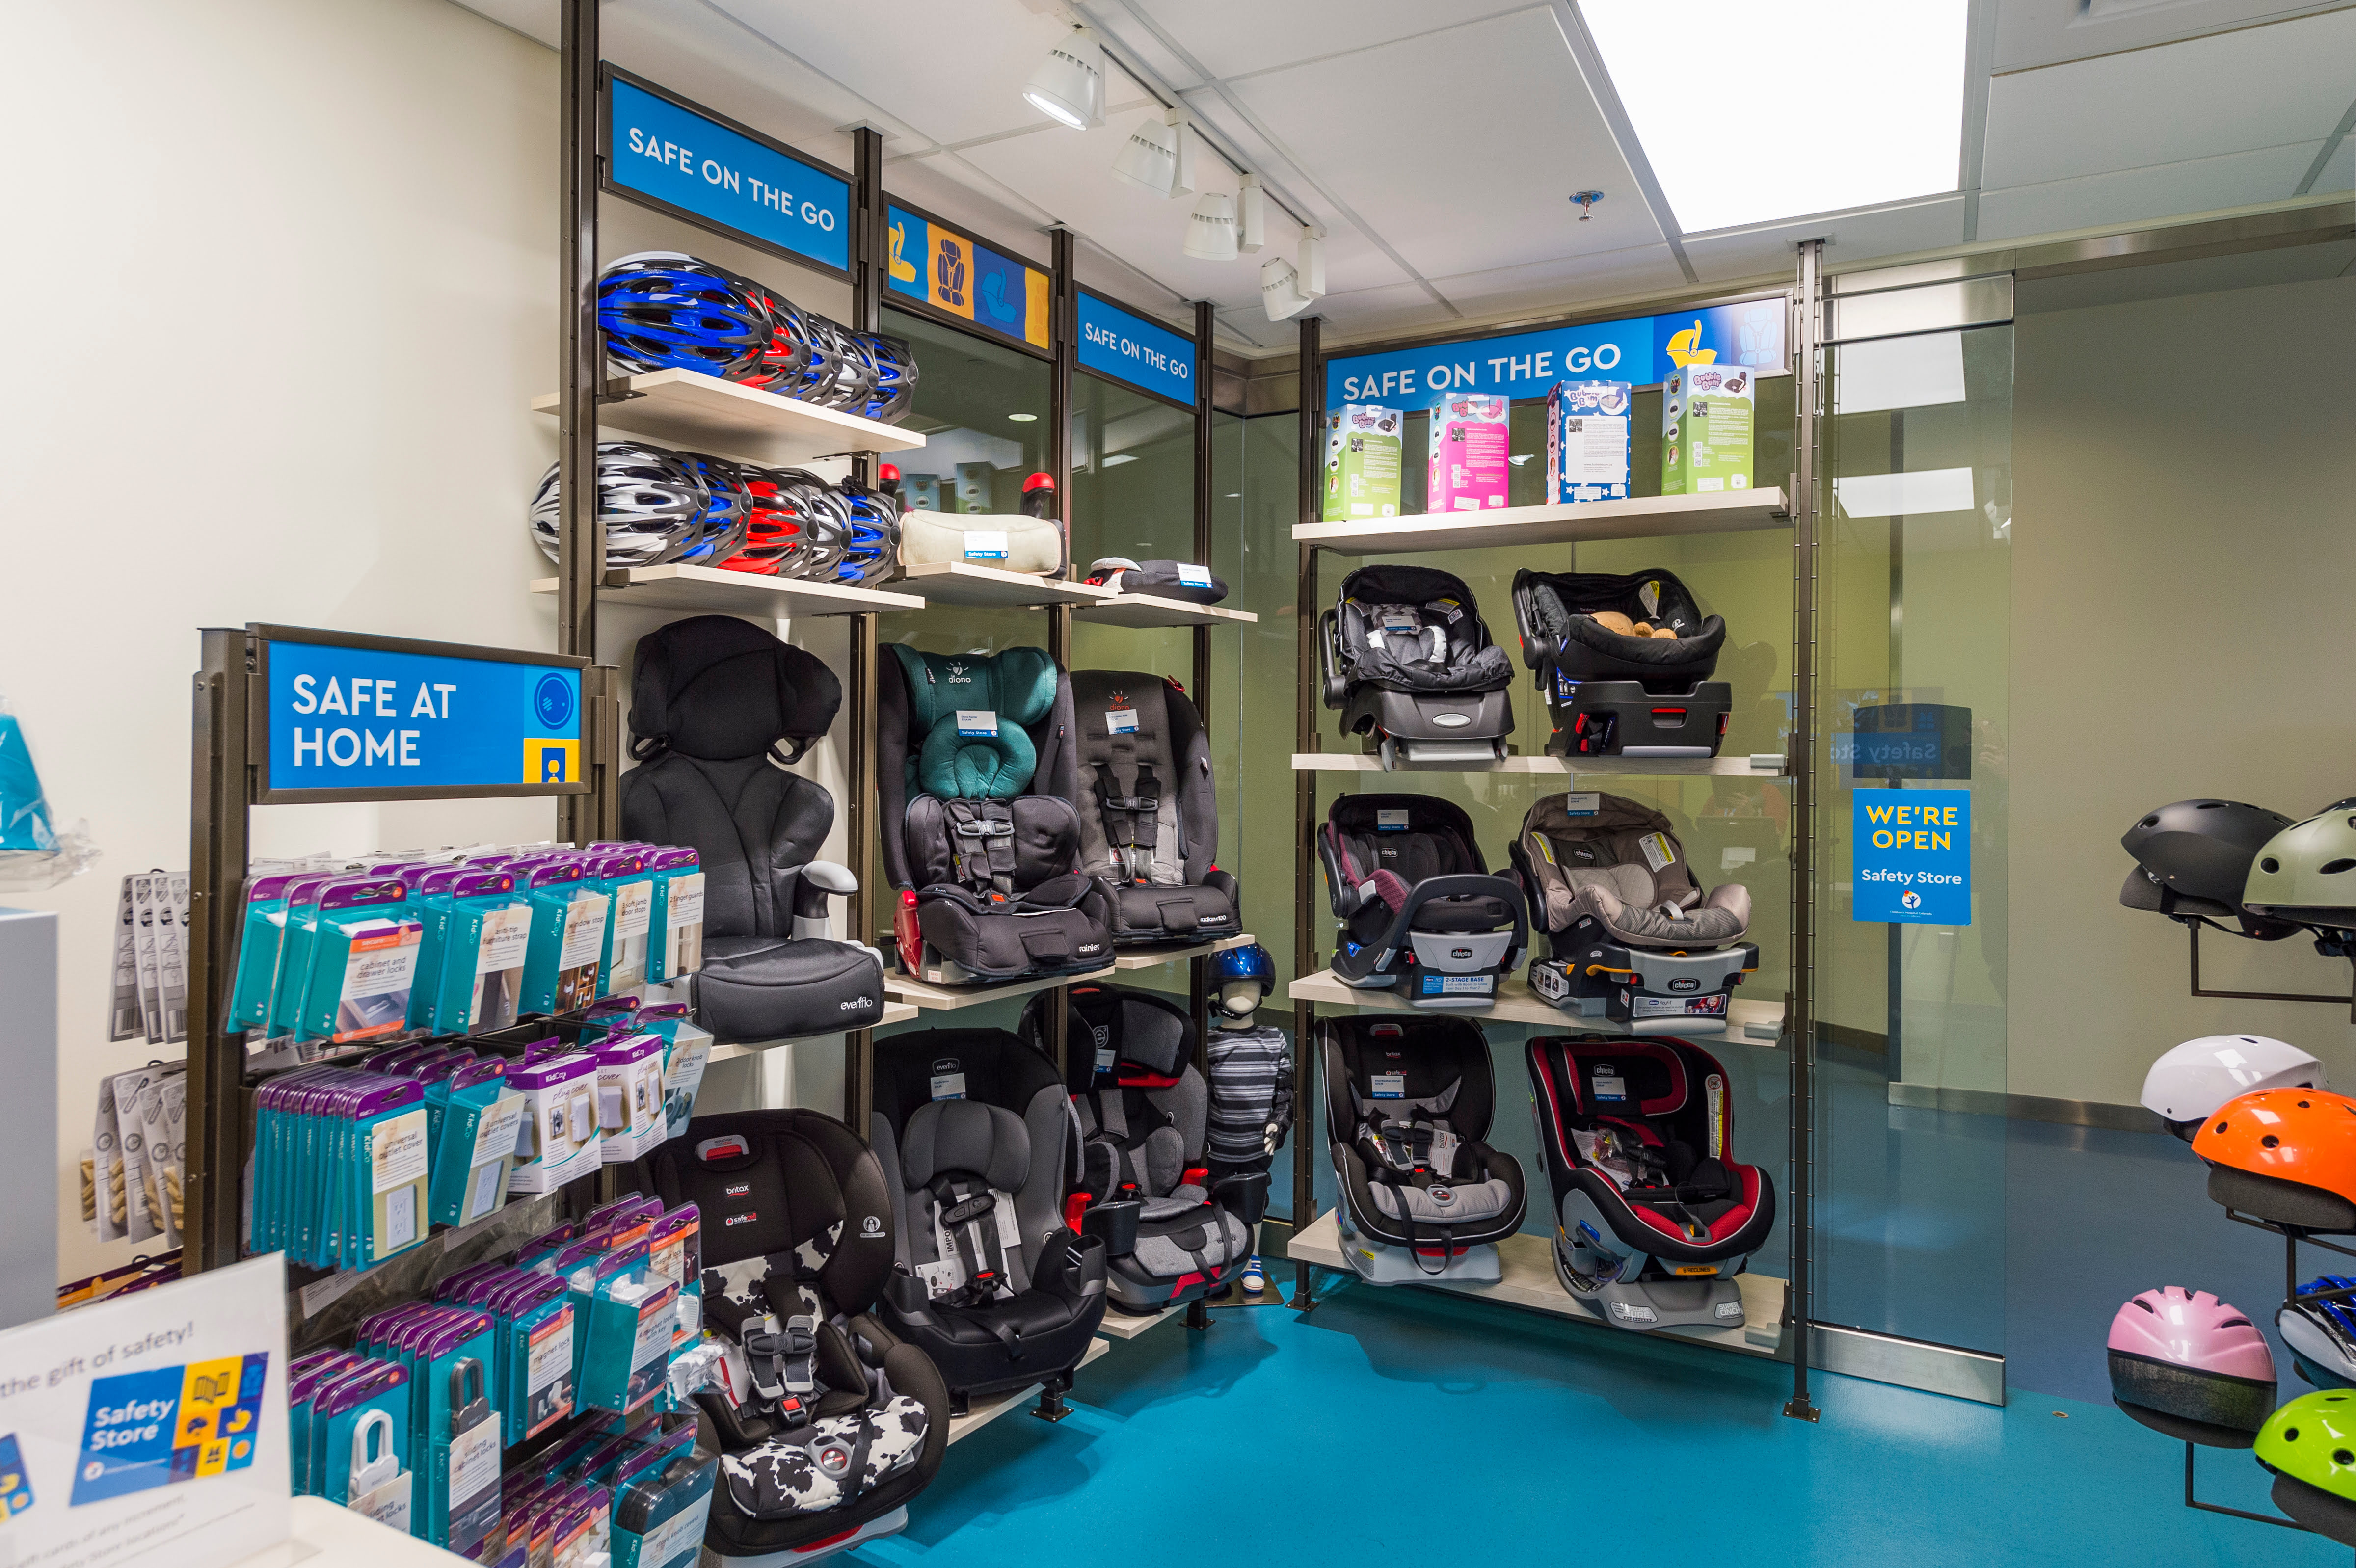 This is a look inside the Safety Store that shows a selection of car seats, helmets and other products on shelves.